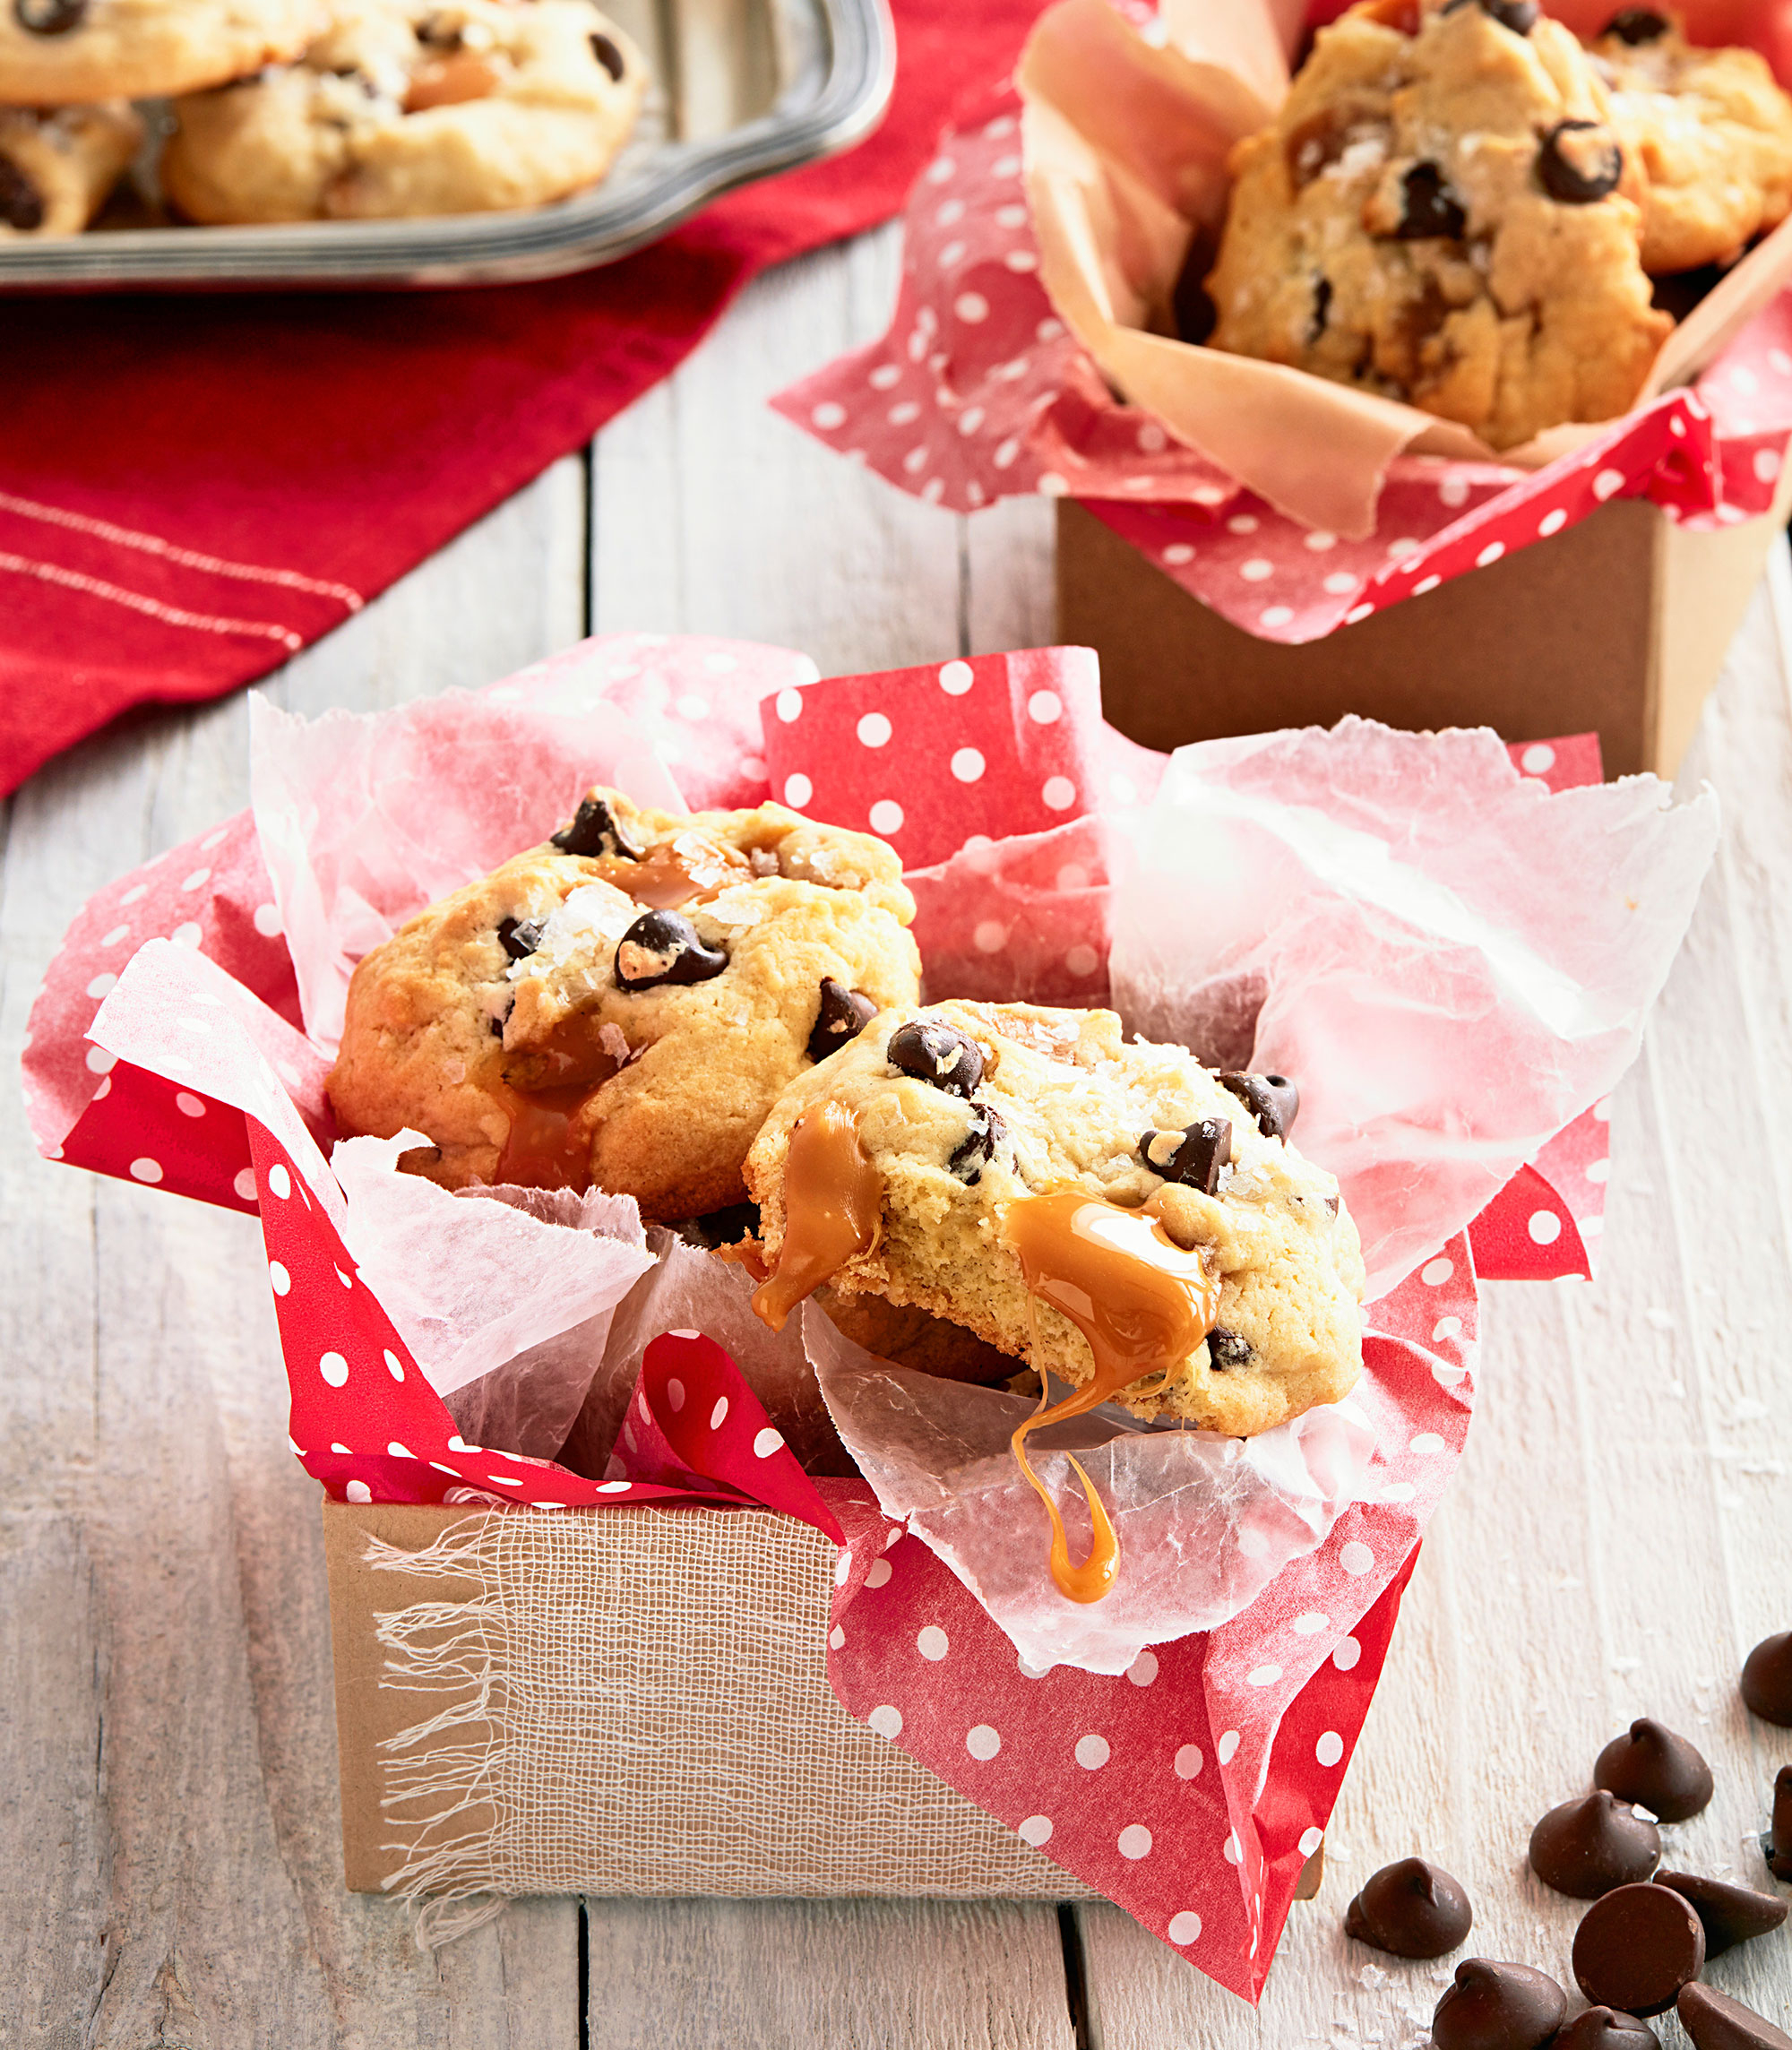 Valerie Bertinelli Shares Two Favorite Recipes for a Holiday Cookie Swap